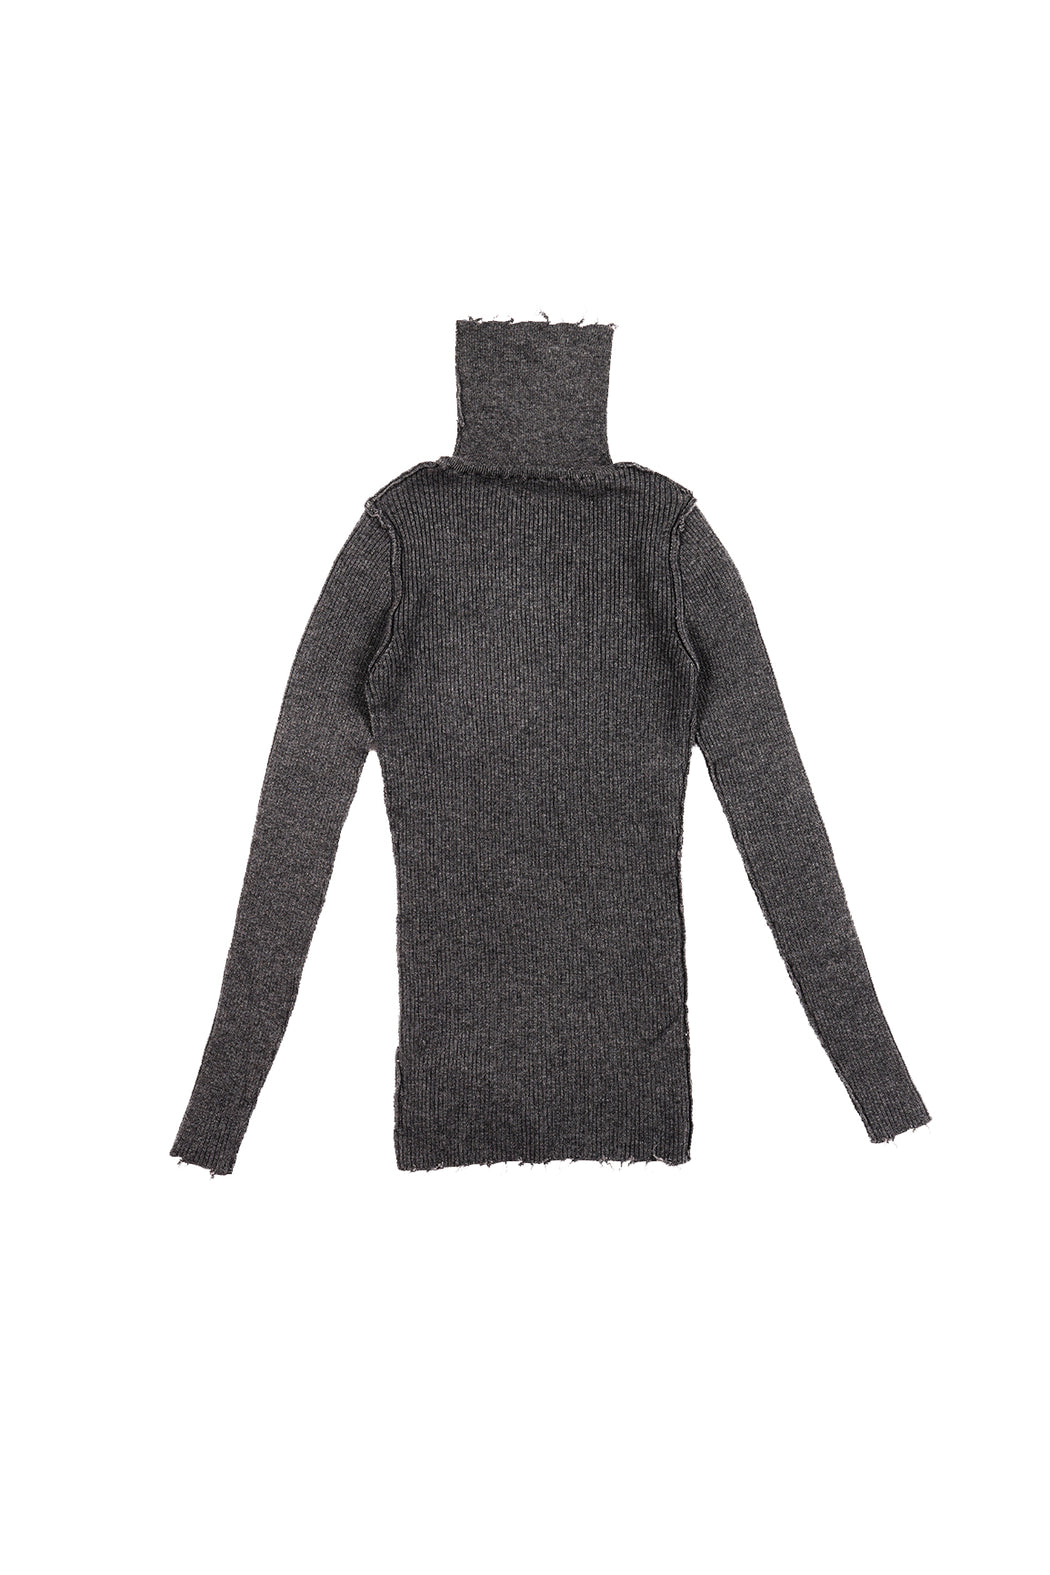 Fit Rib Turtle Knit - Black